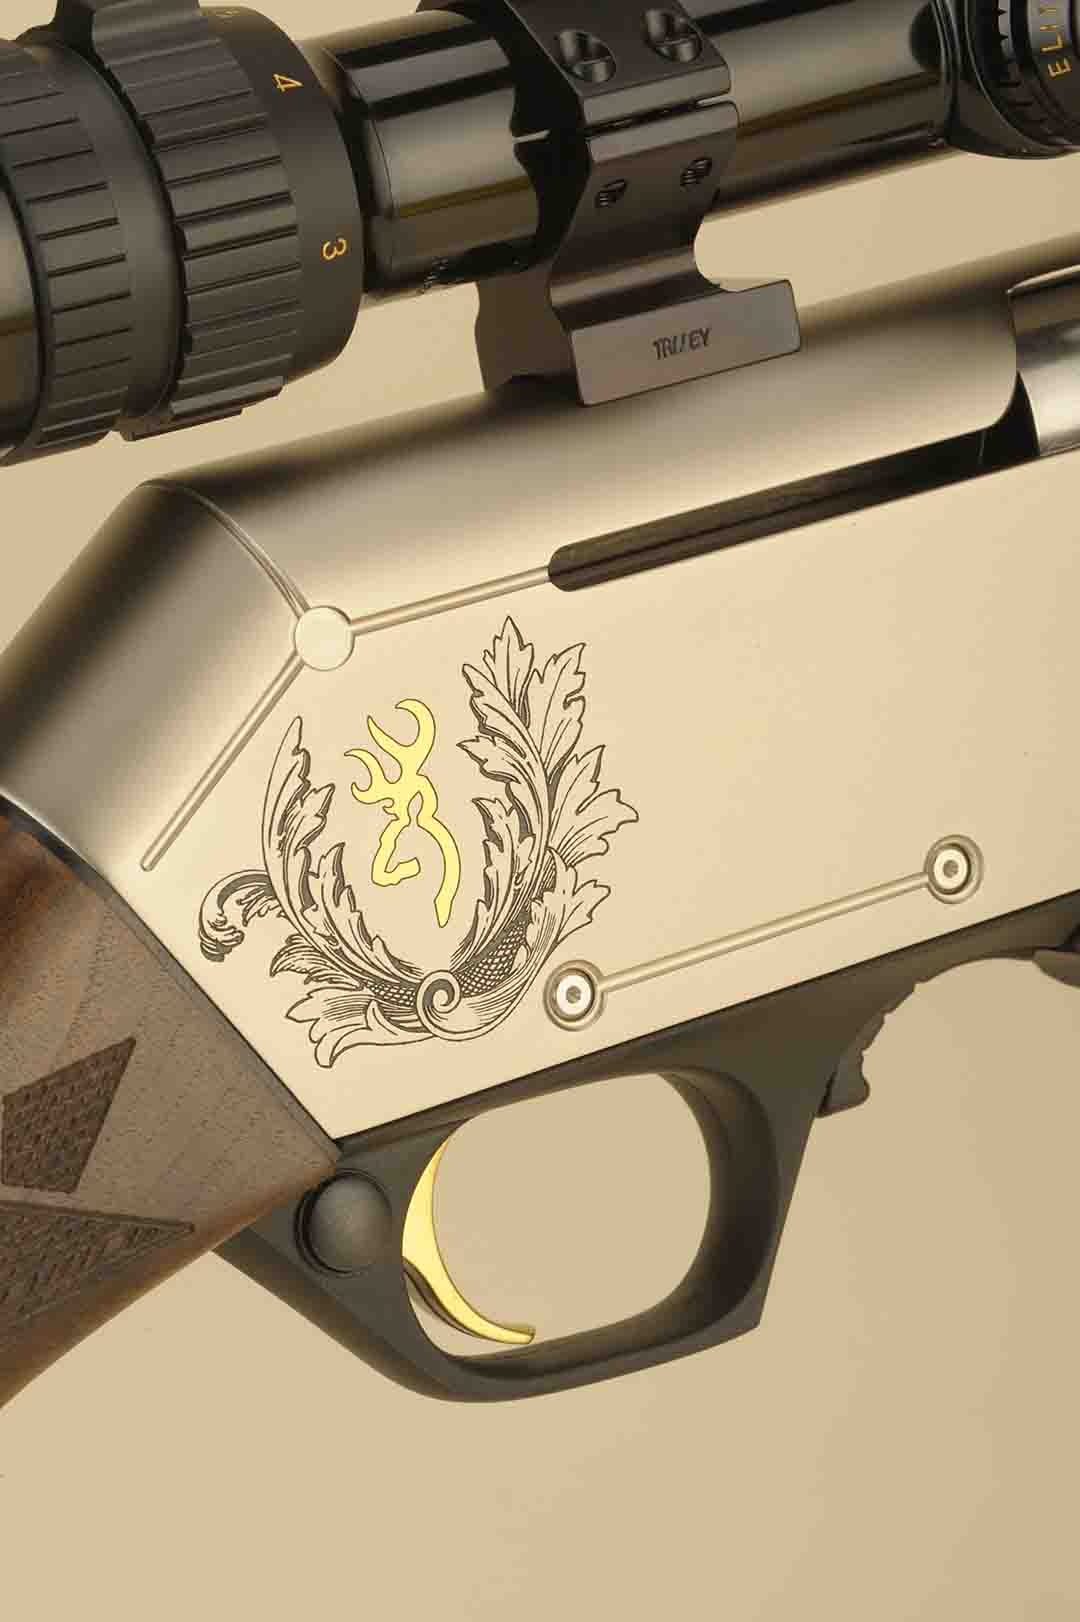 This photo shows the detailing with the MK 3 model with the high relief engraving. The cross bolt safety is standard as well as the gold-plated trigger.